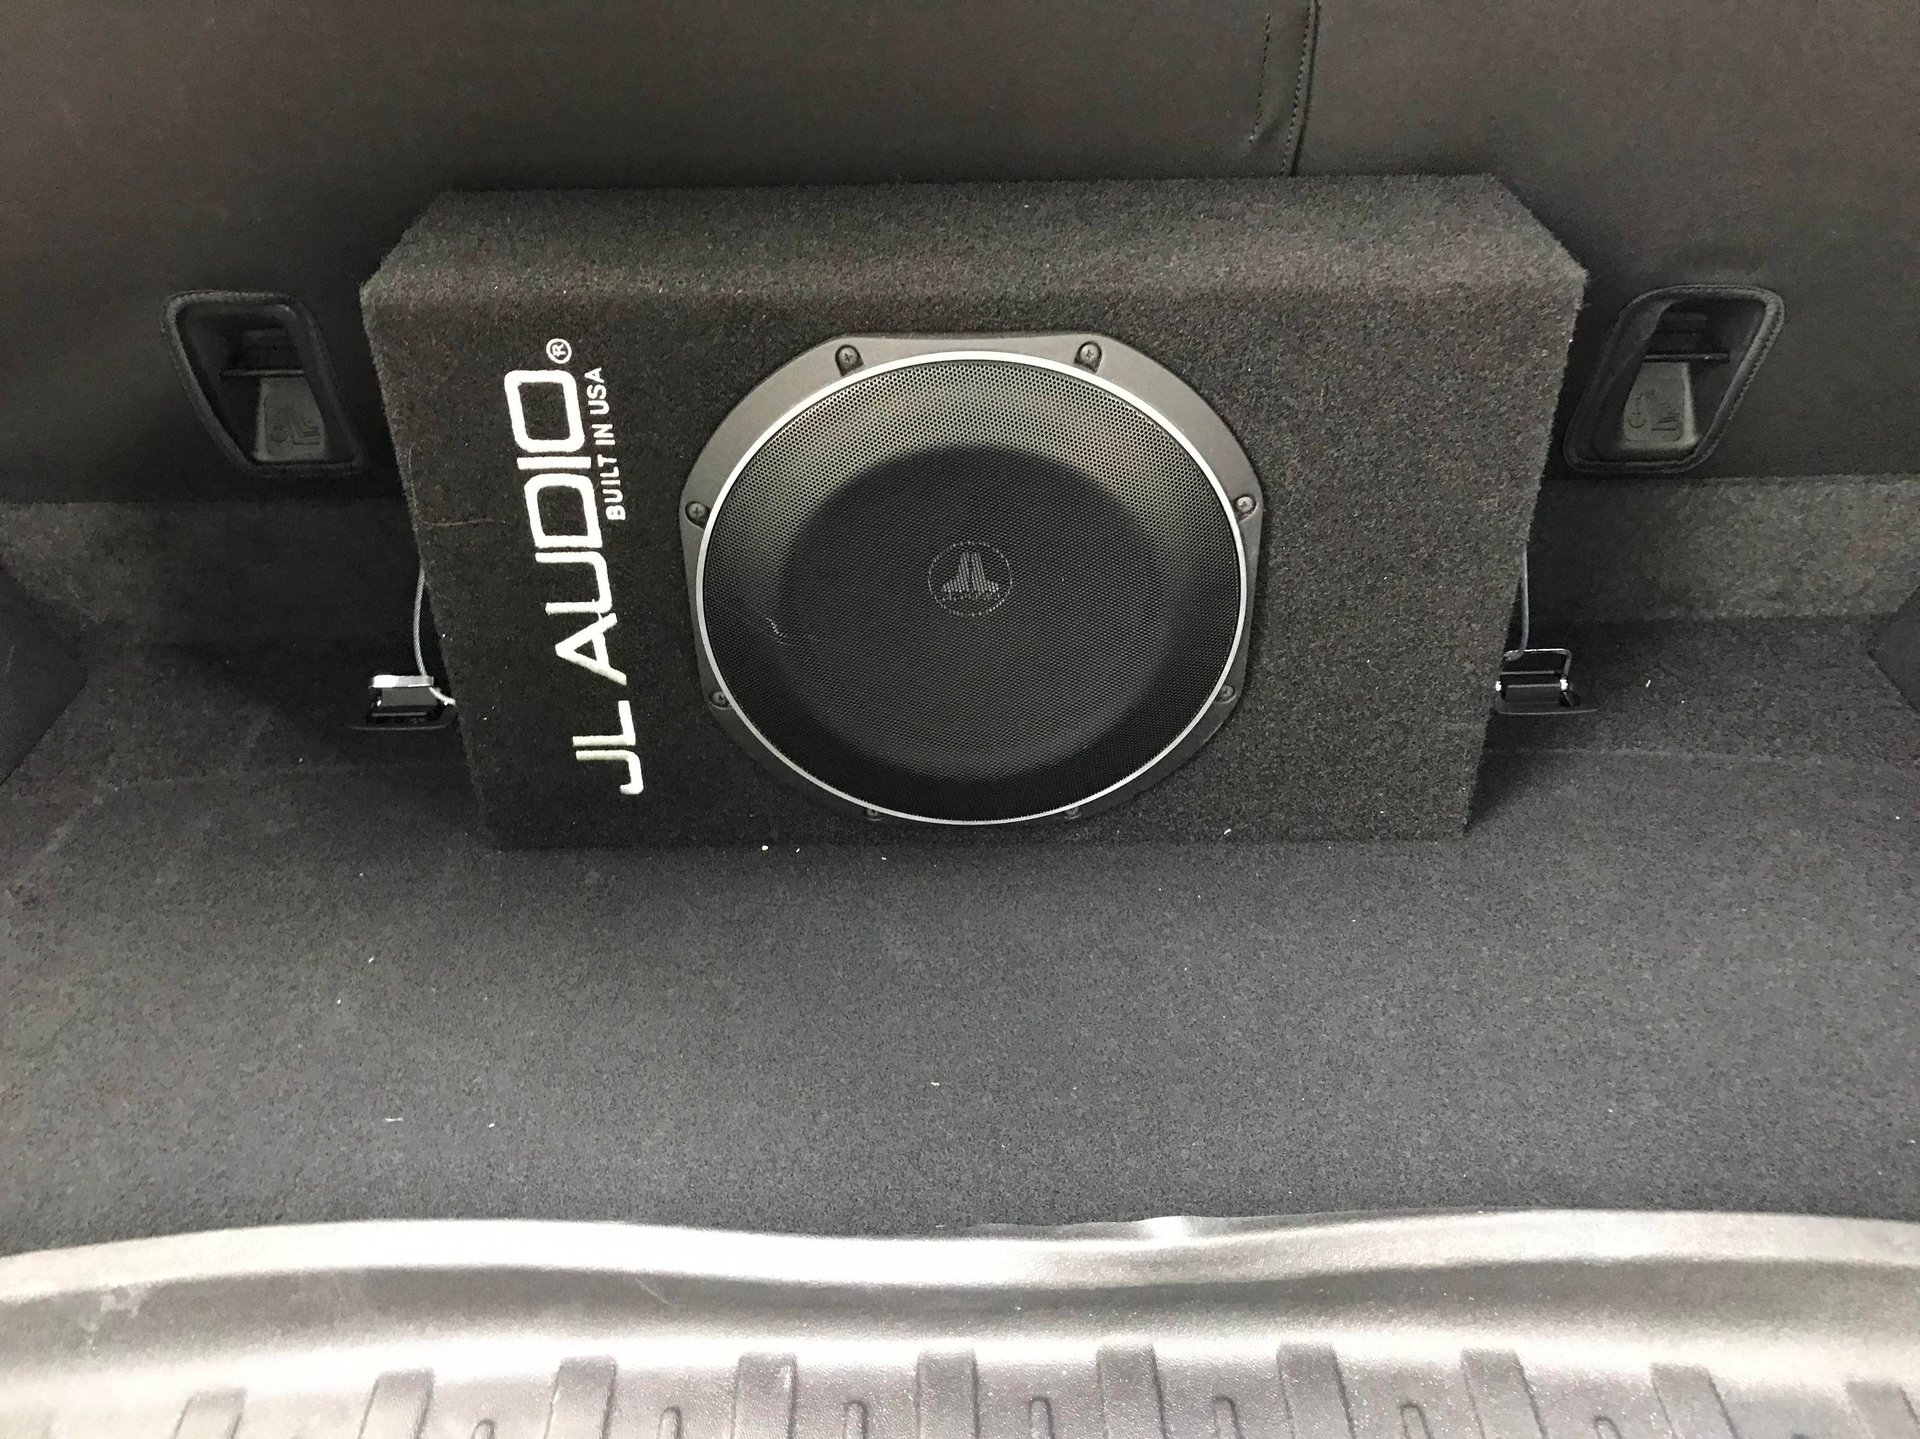 2017 CRV EX-L 8 speaker replacement with subwoofer addition